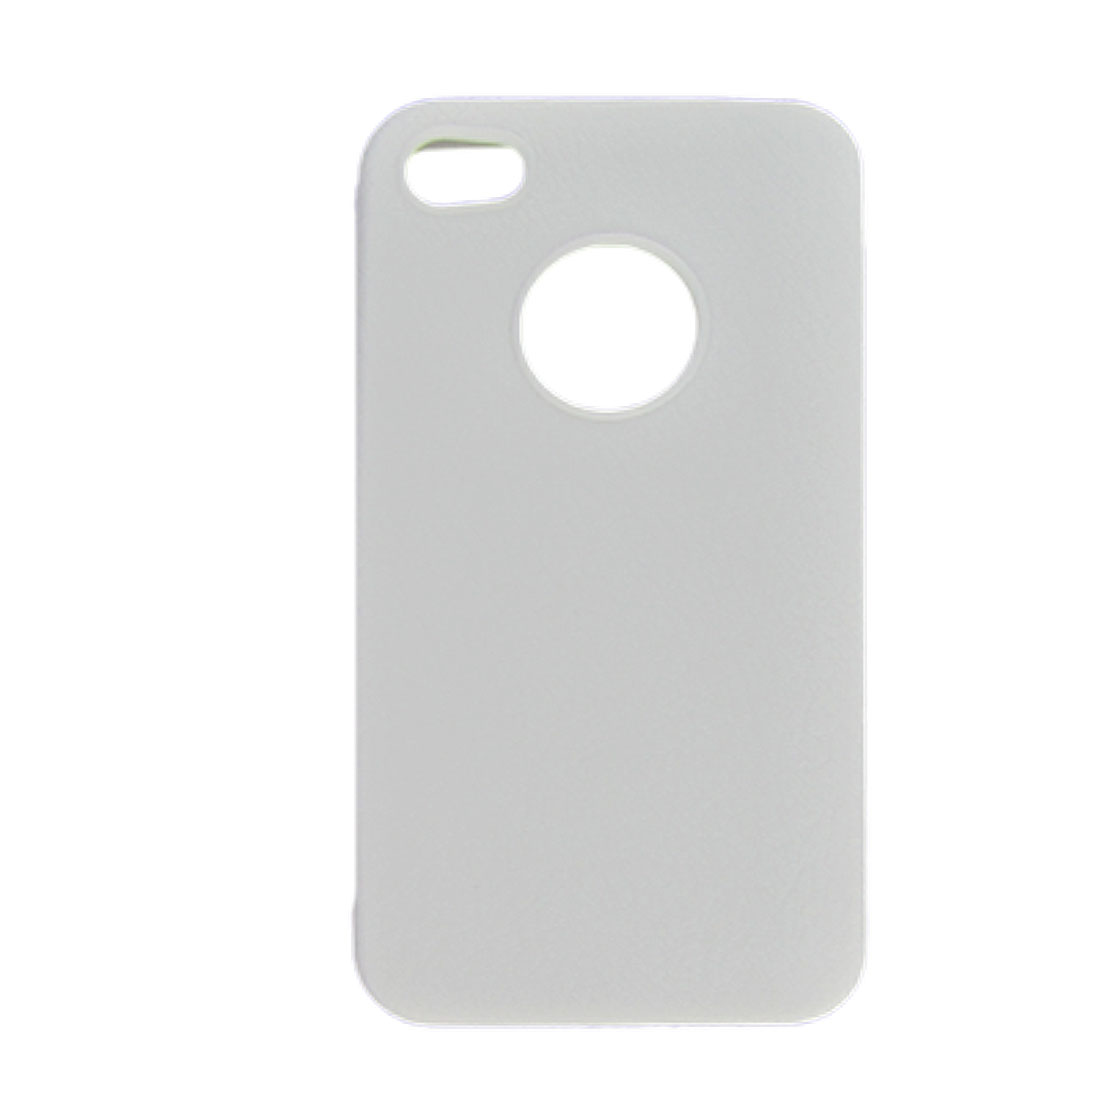 For iPhone 4 4G Soft Plastic Case Textured External White